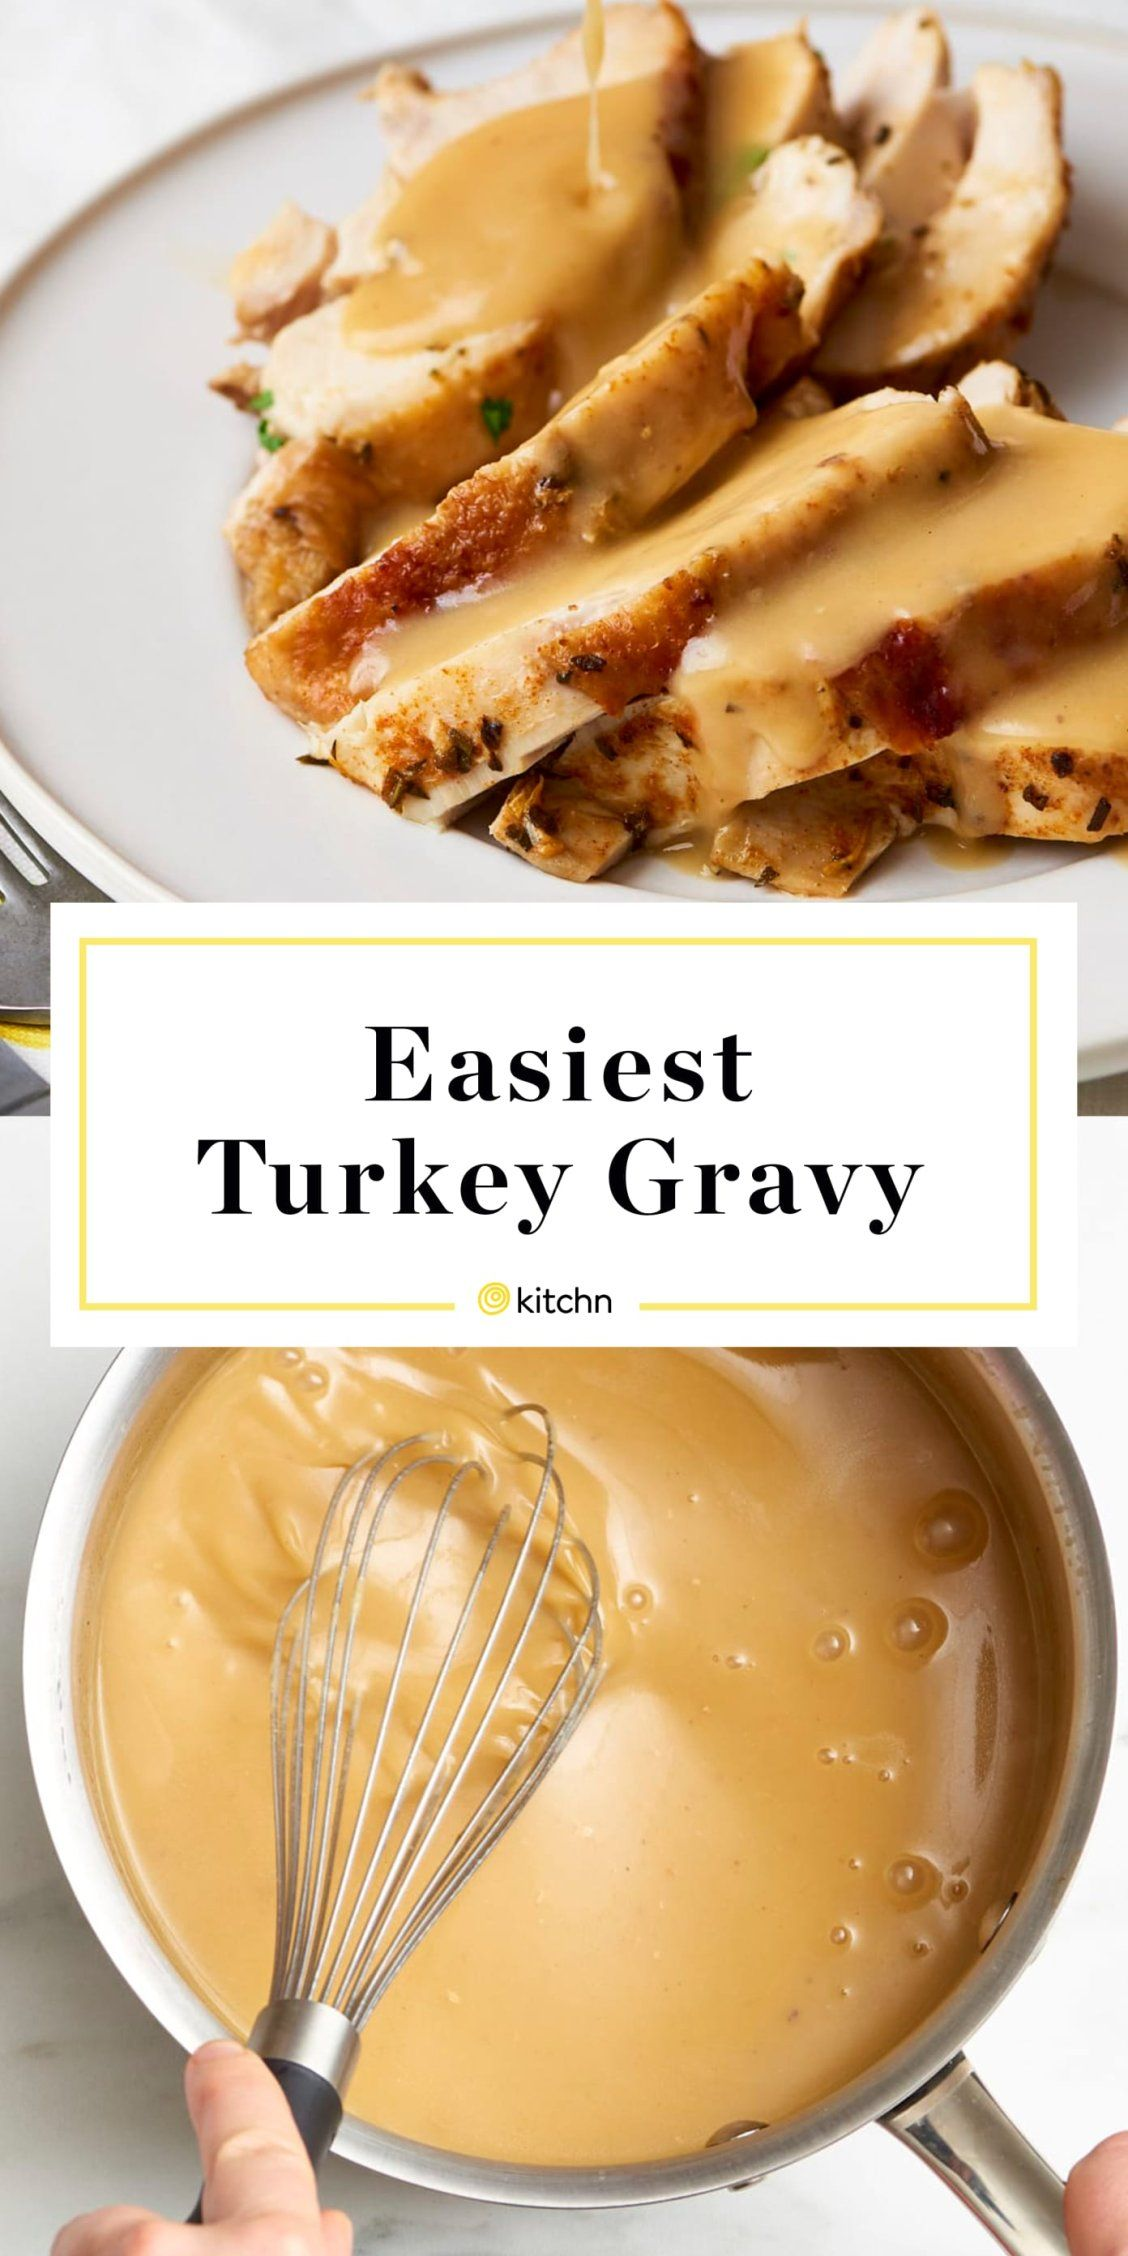 Our Tried-and-True Method for Old-Fashioned Turkey